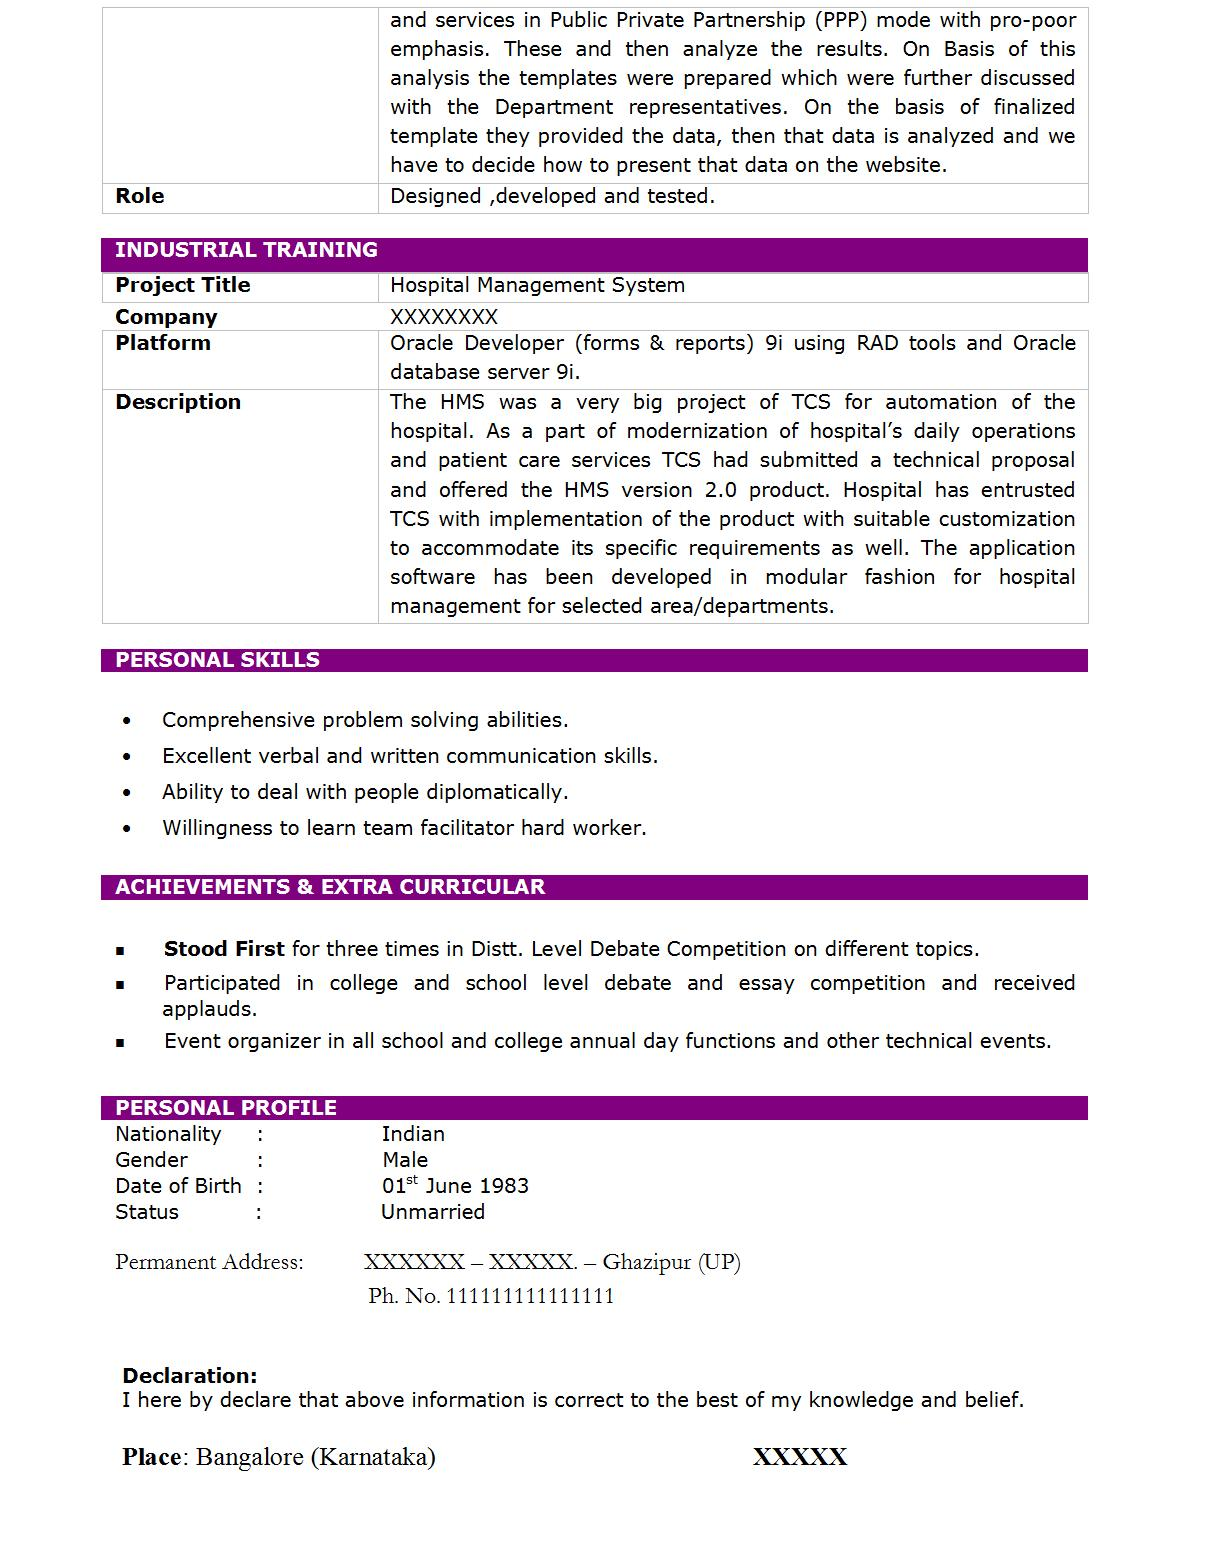 Best Place To Buy Argumentative Essay Resume Computer And